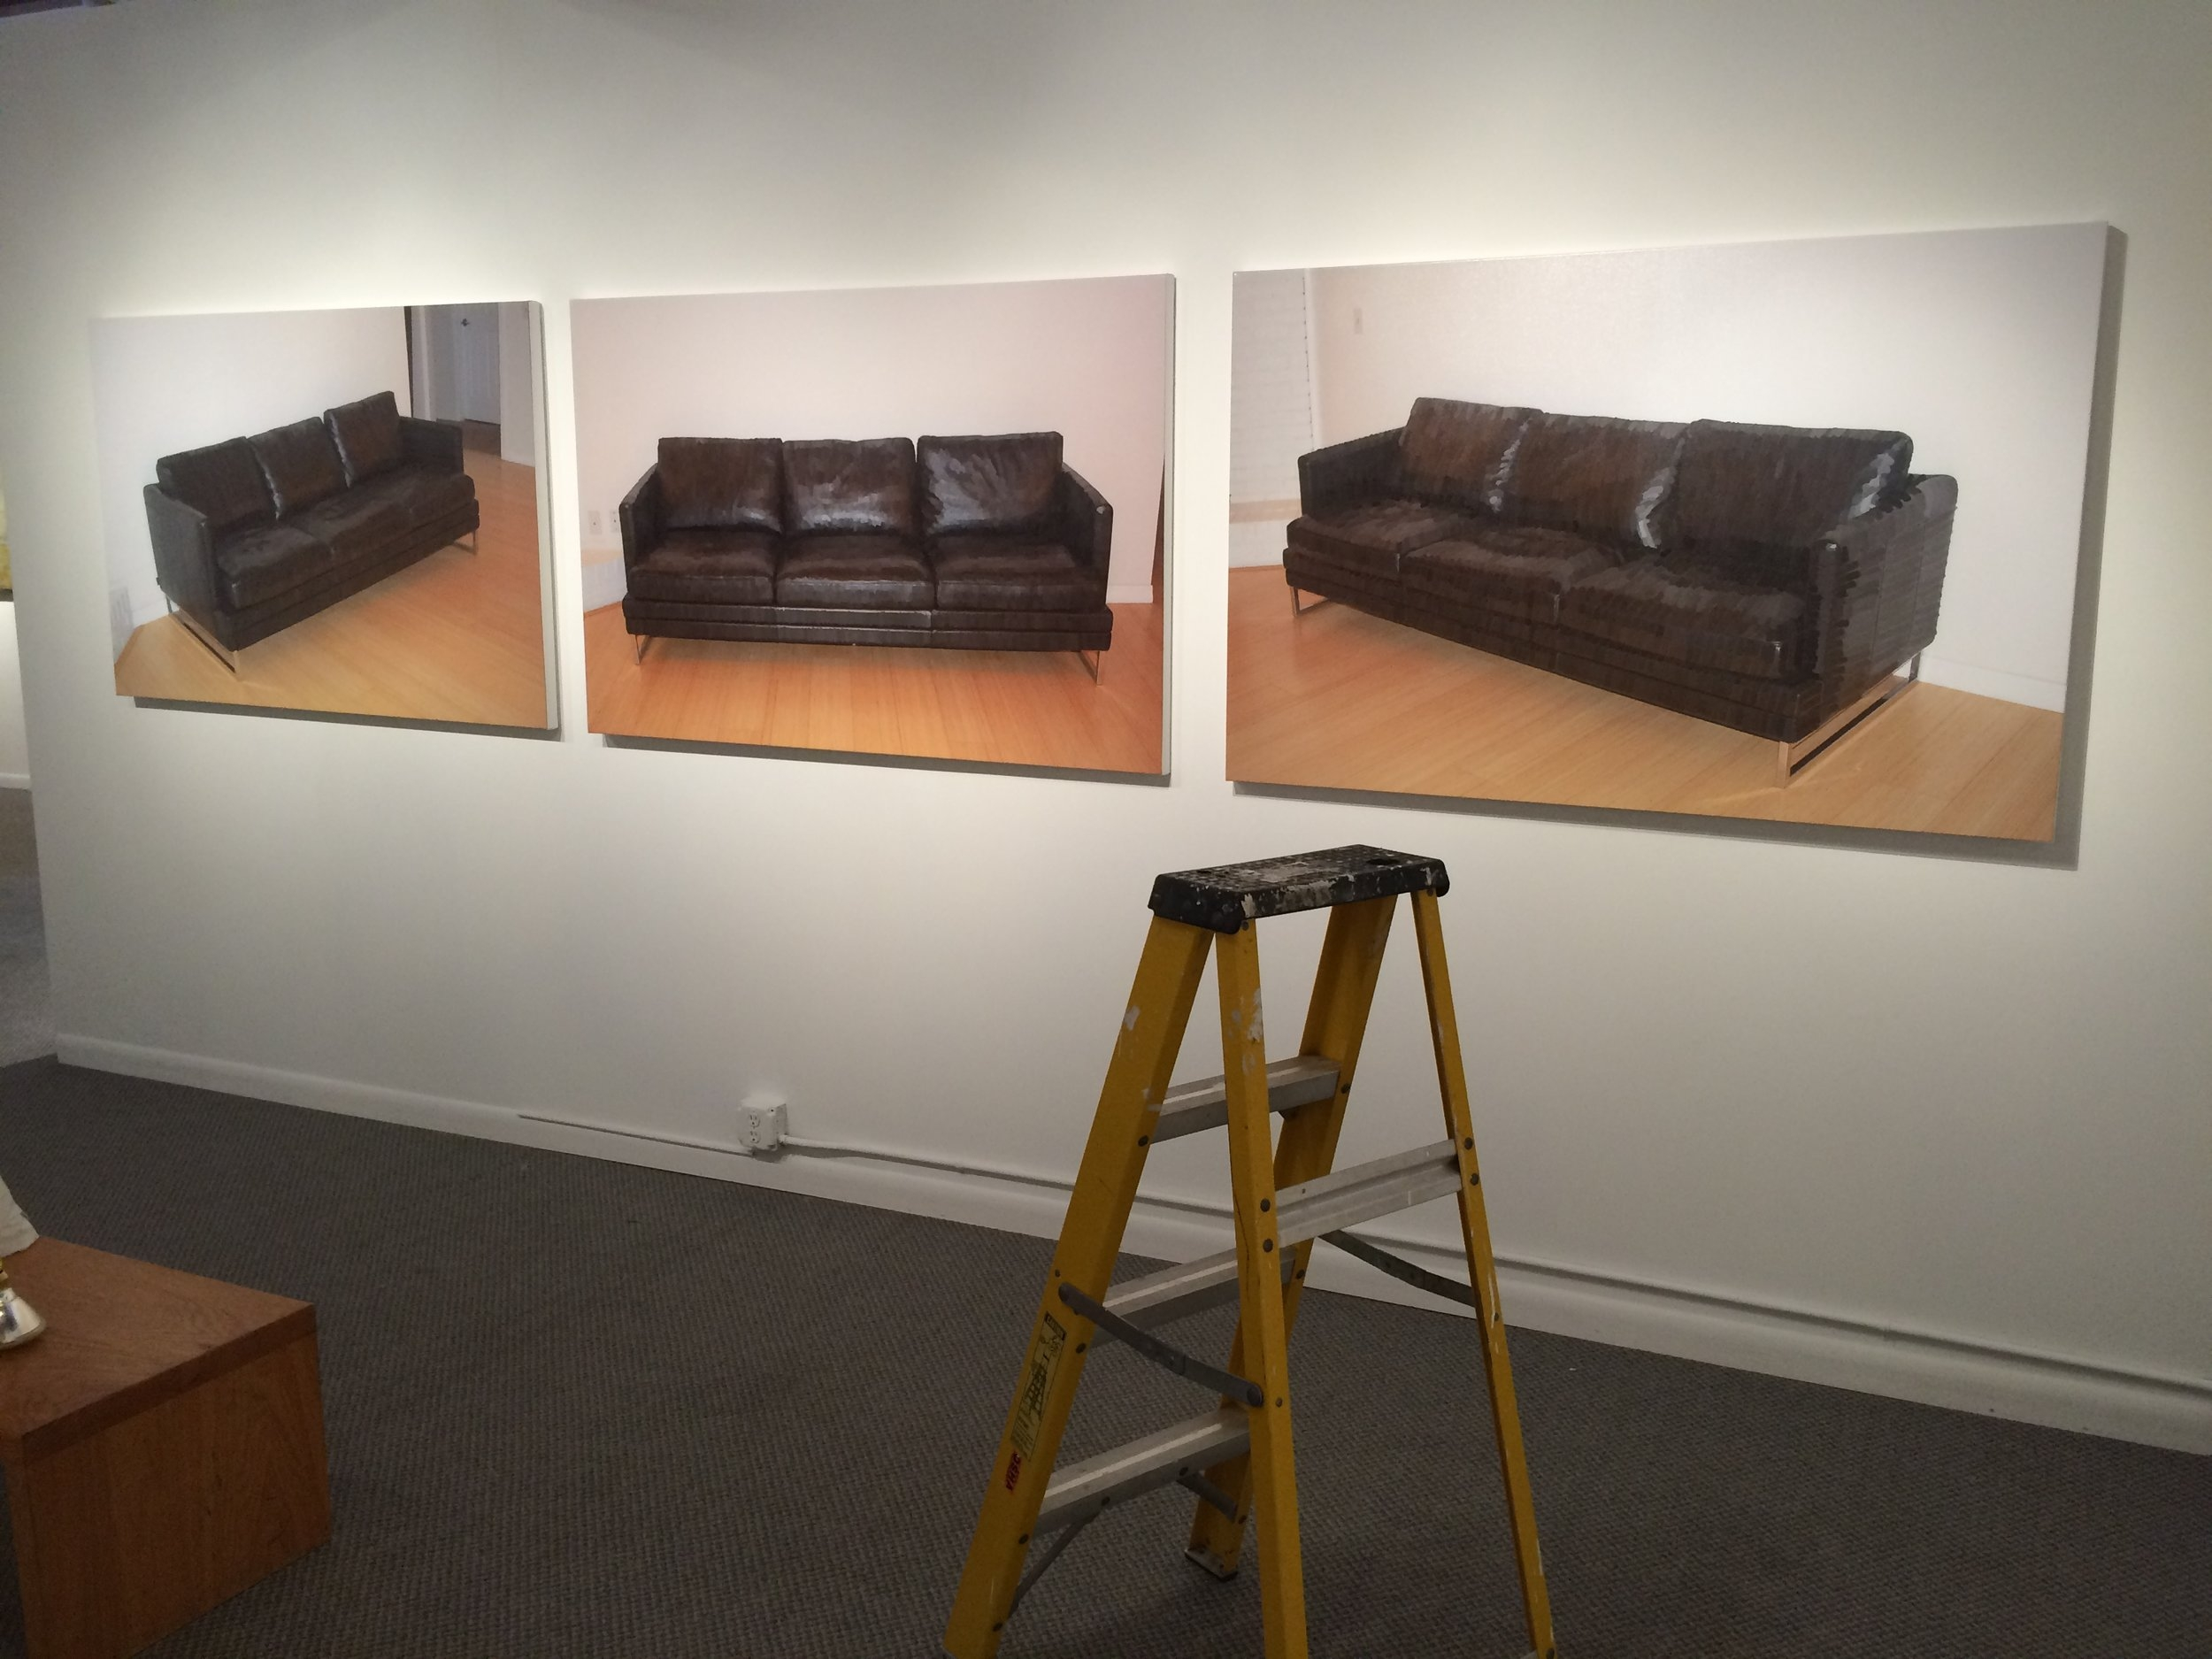 Painted Black Couches on the wall.JPG